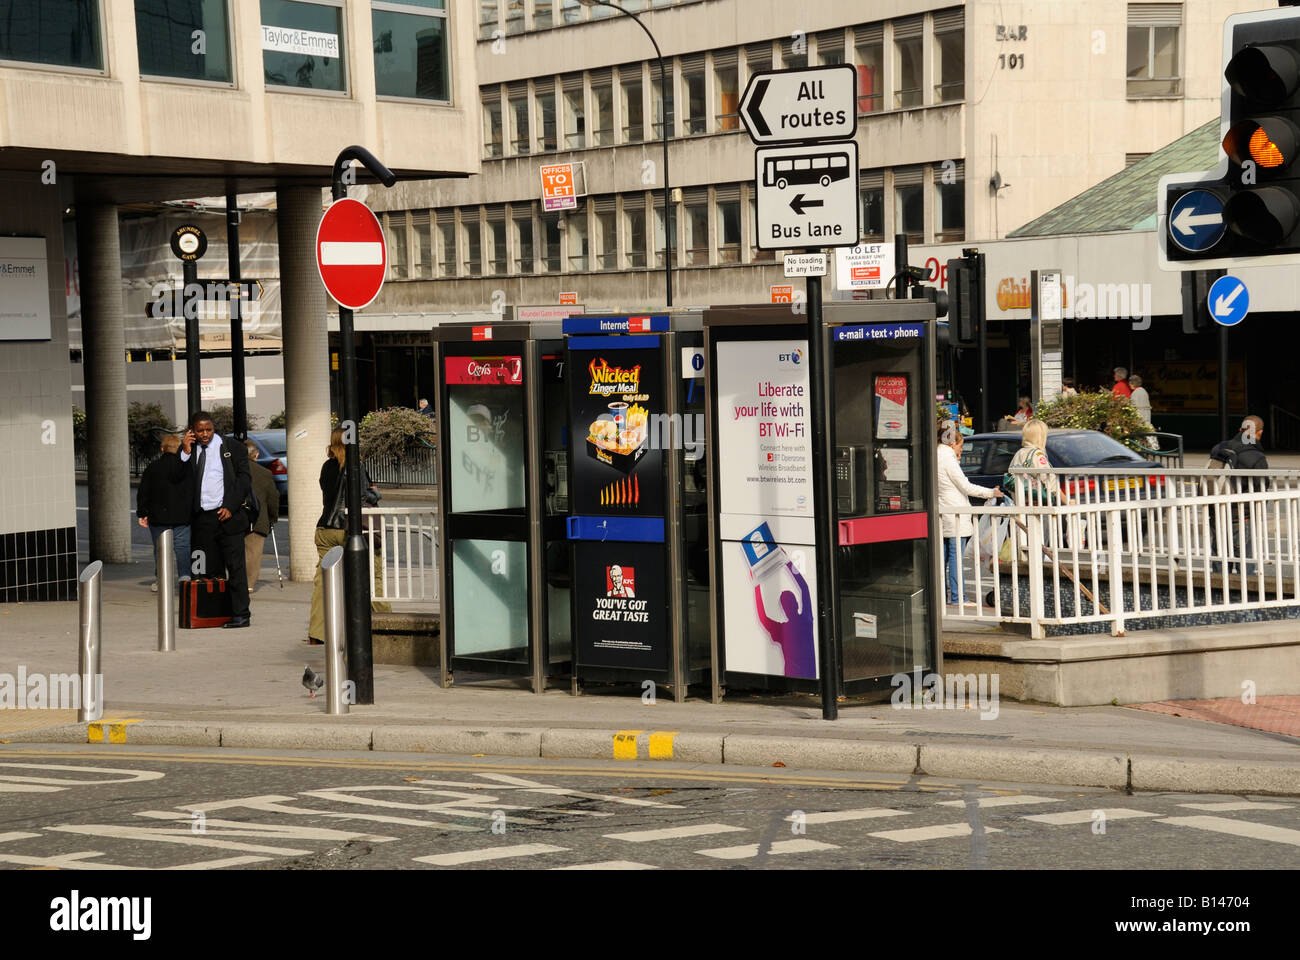 City Centre Street Furniture - Stock Image